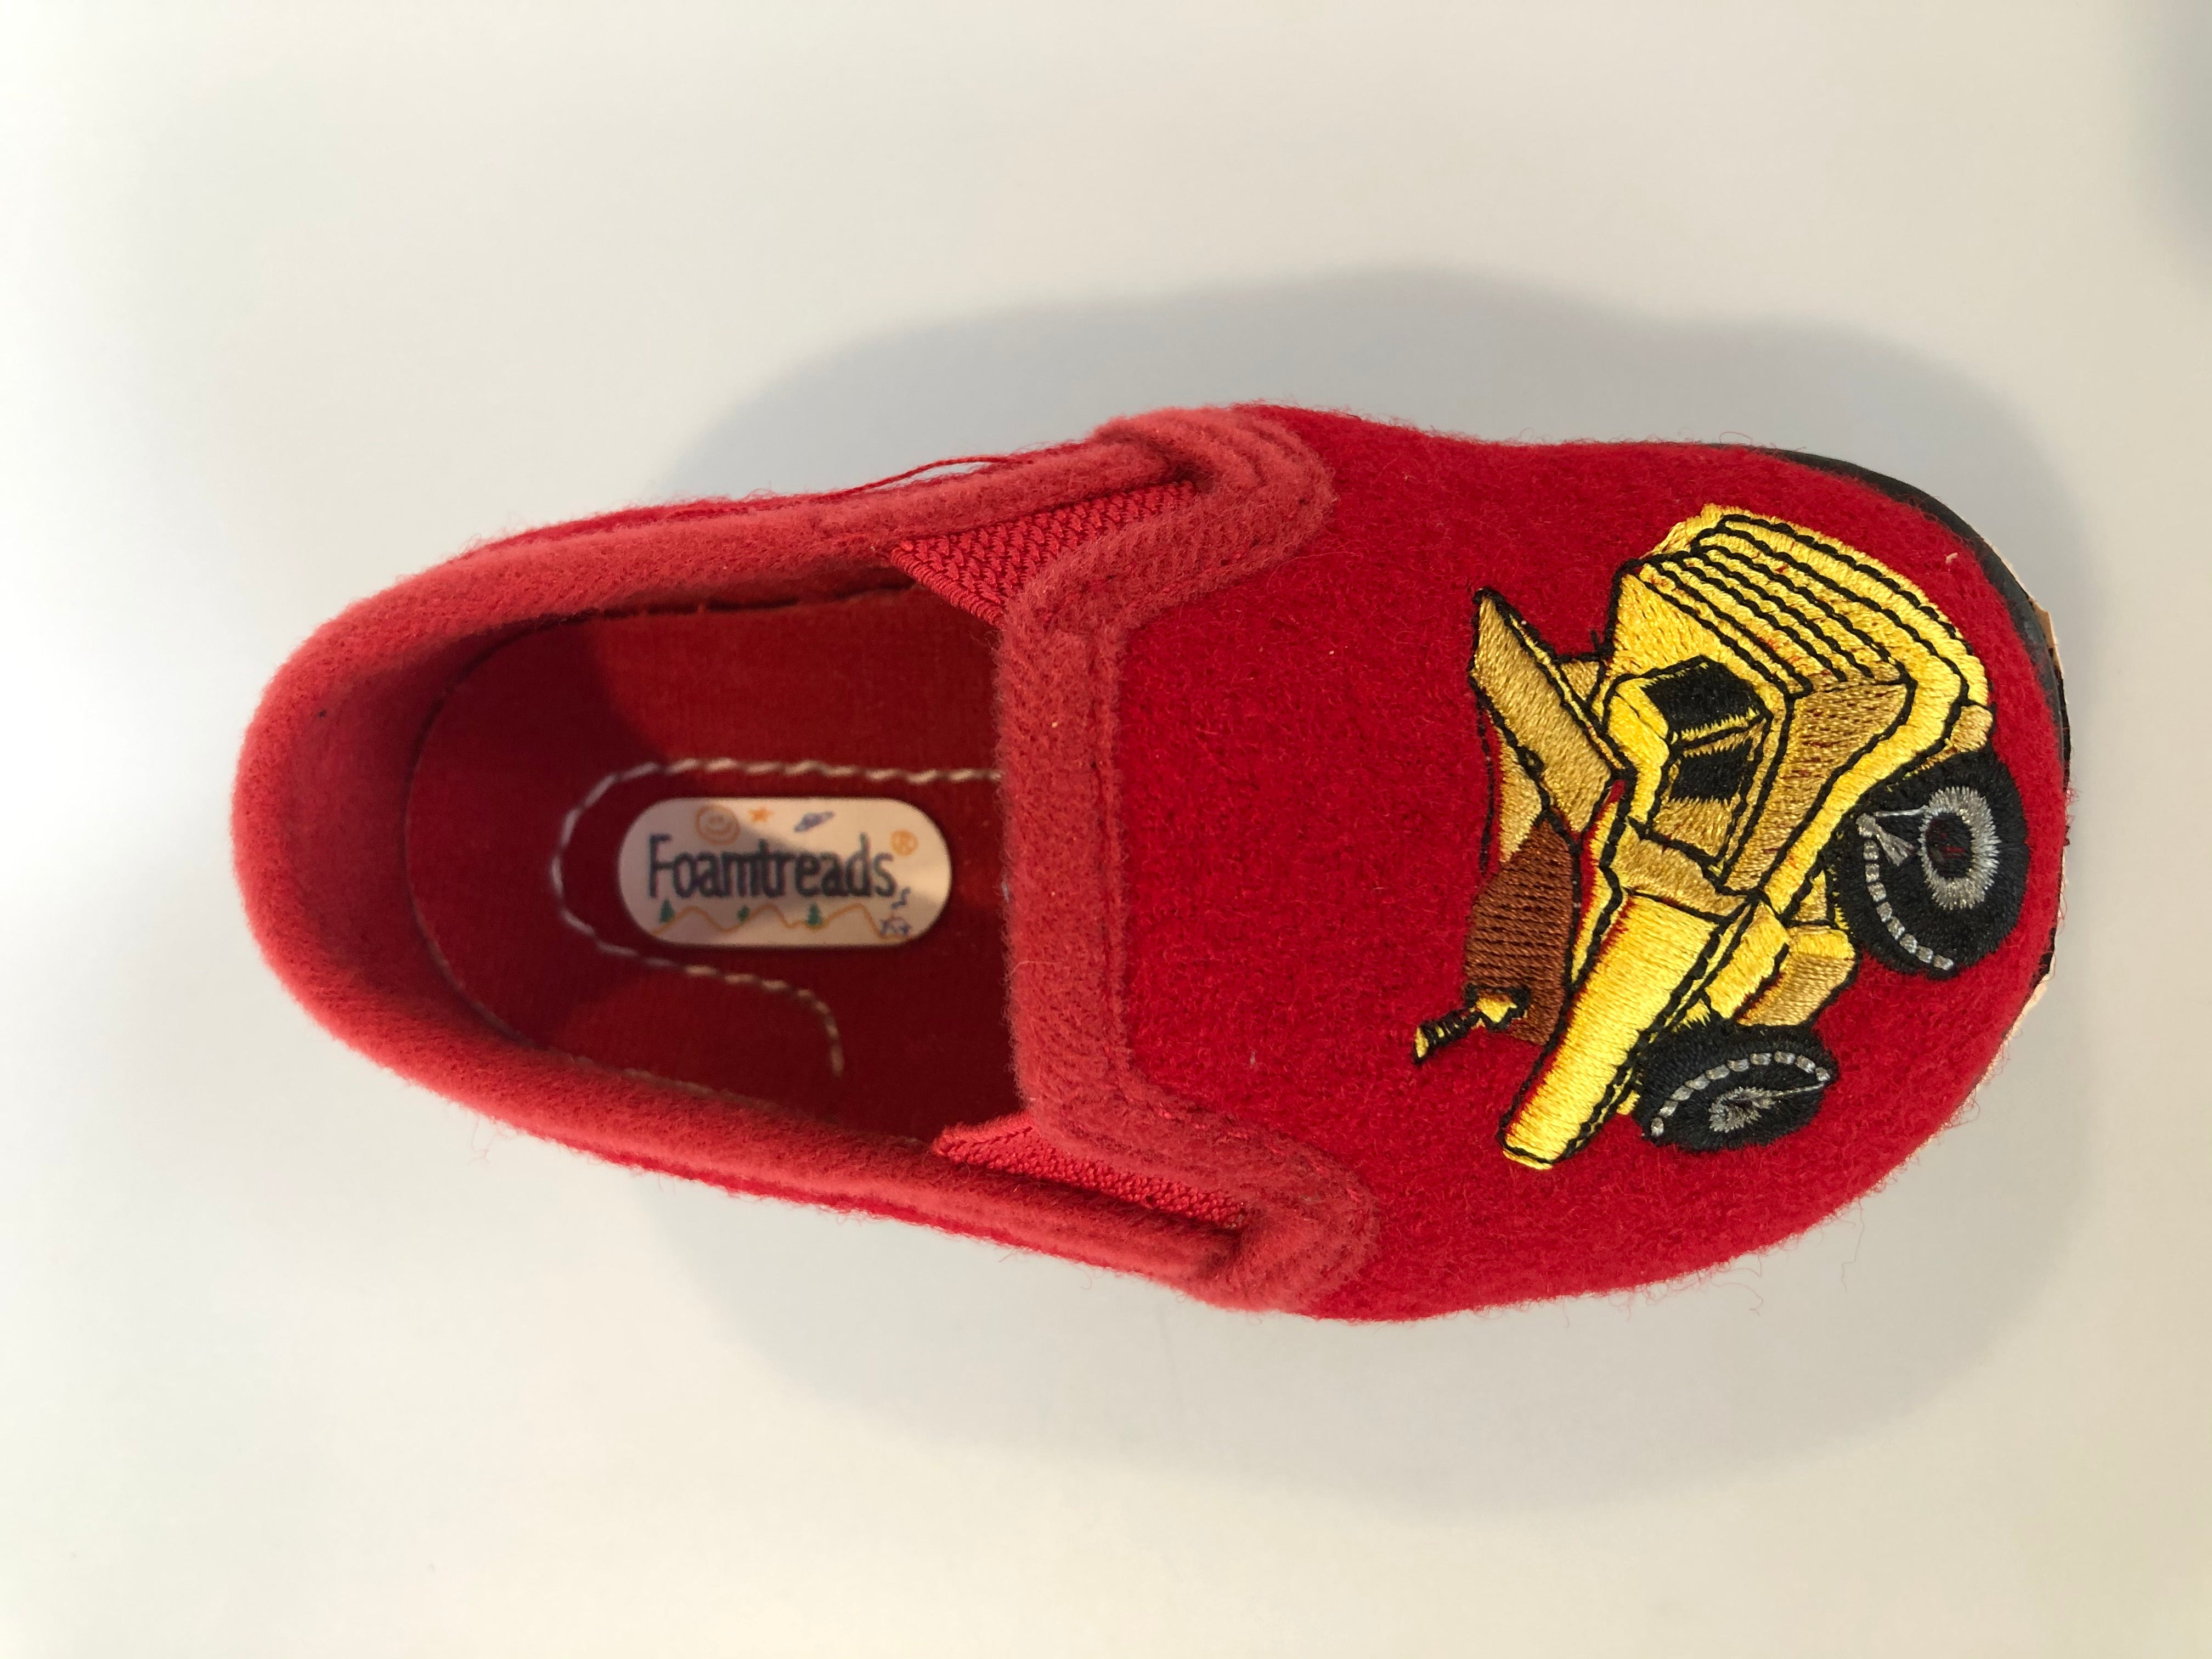 Foamtreads Red Truck Slipper